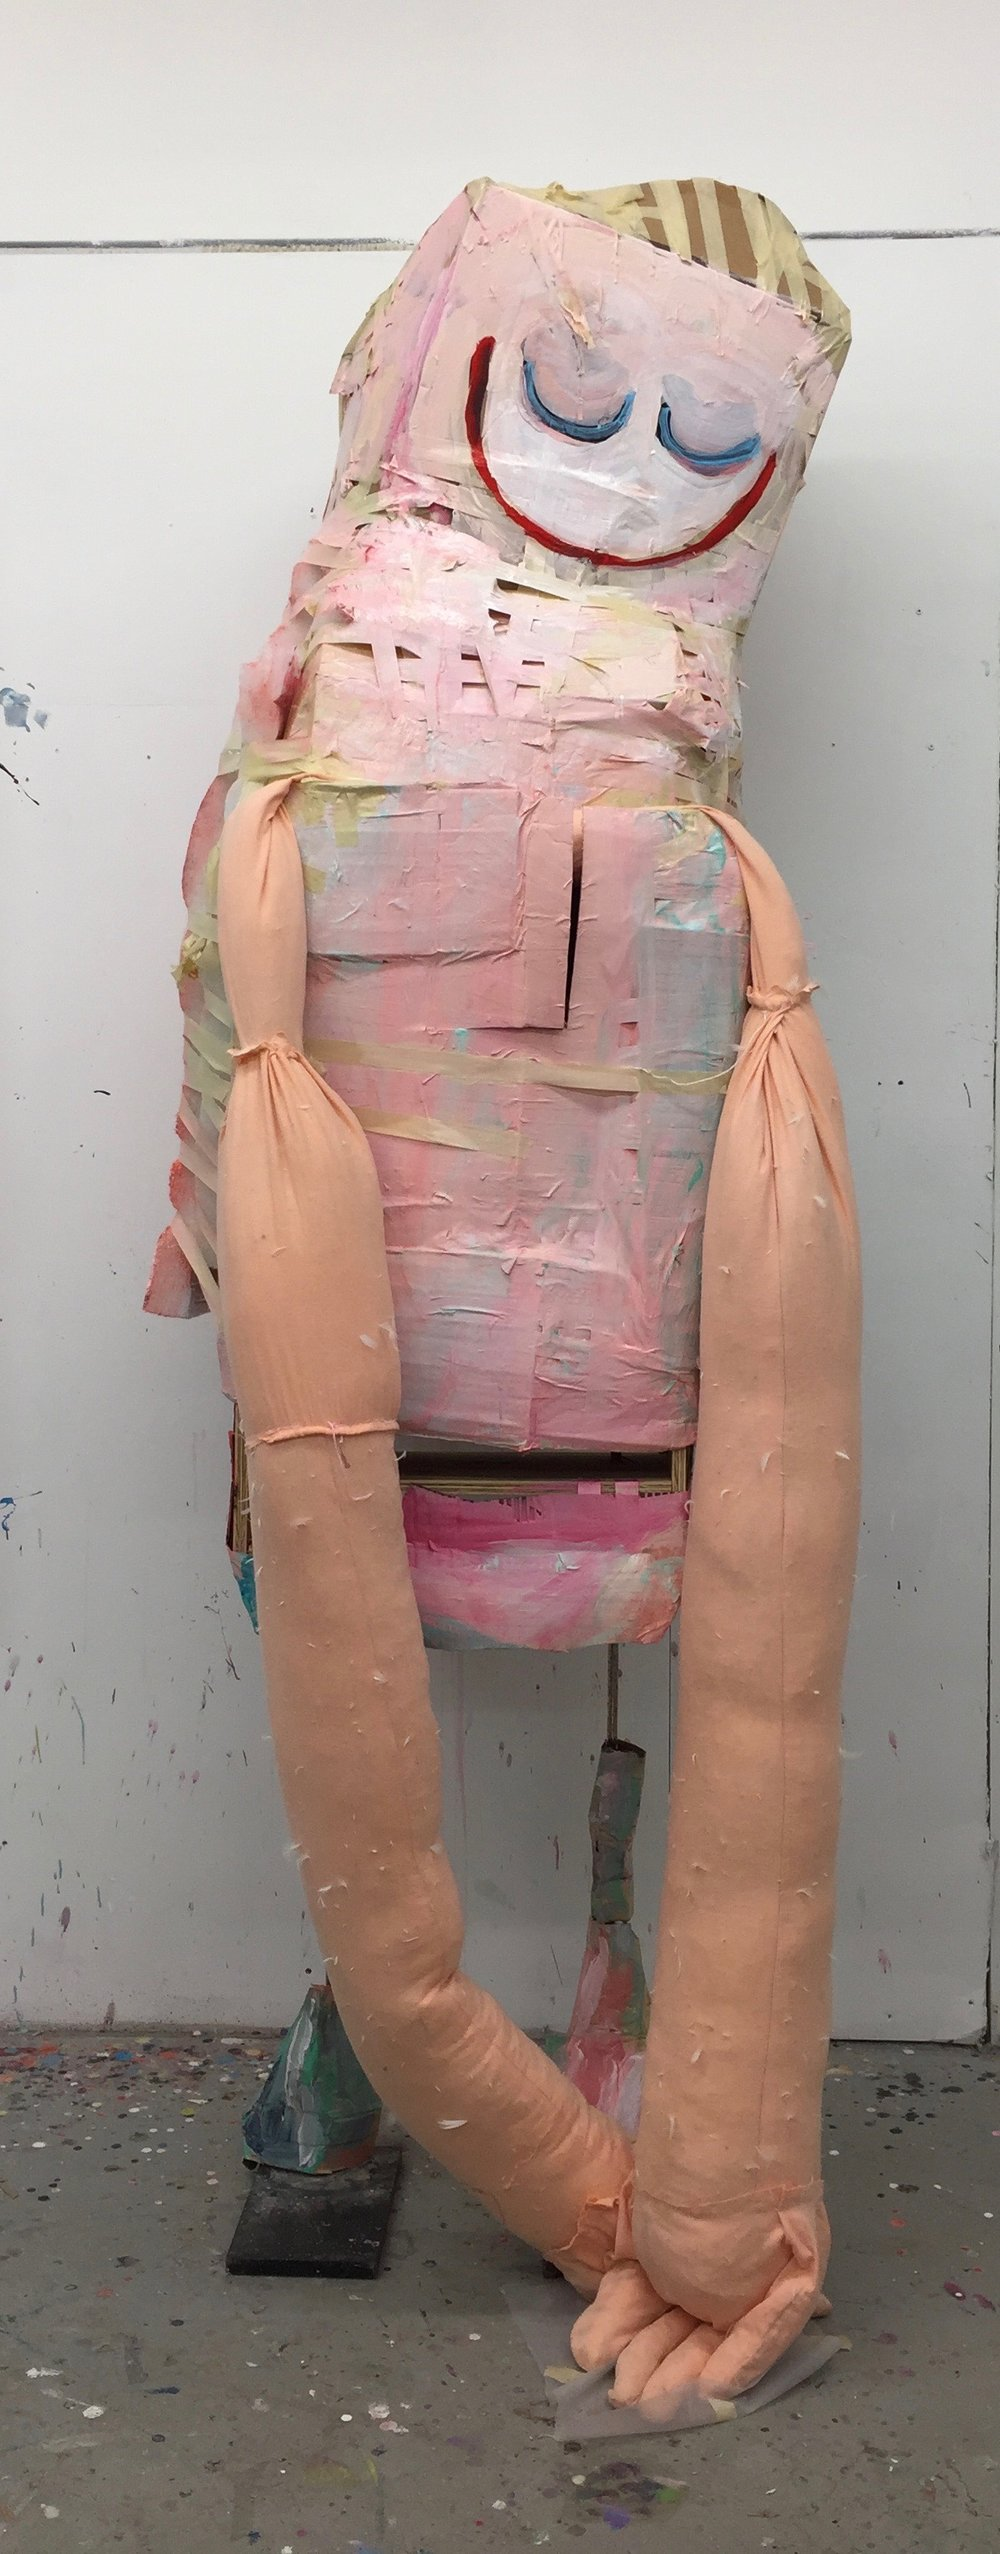 "Her Hugs (2017), Acrylic on cardboard, masking tape, batting, and wood frame on metal legs, 94"" x 36"" x 26"""